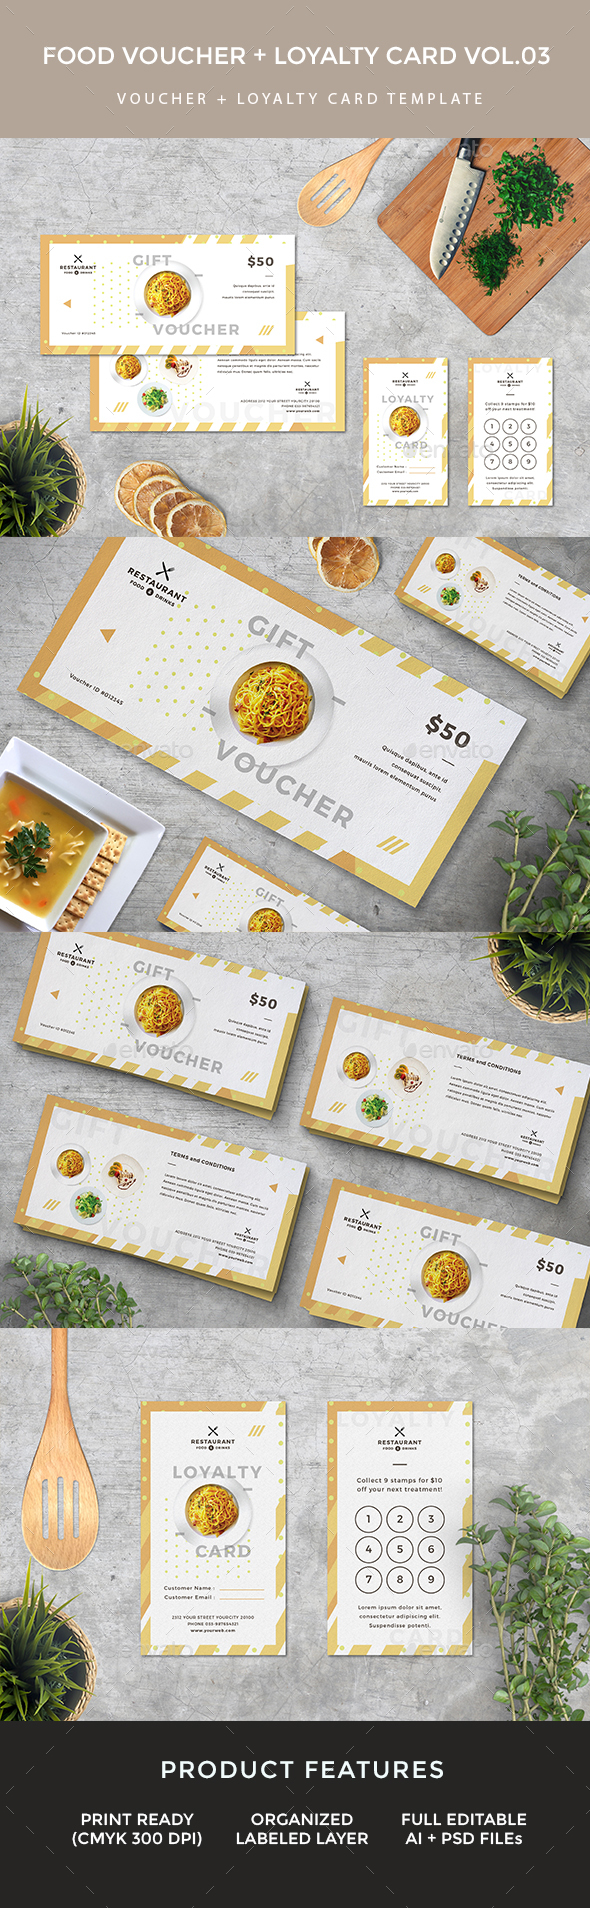 Gift Voucher Loyalty Card - Loyalty Cards Cards & Invites